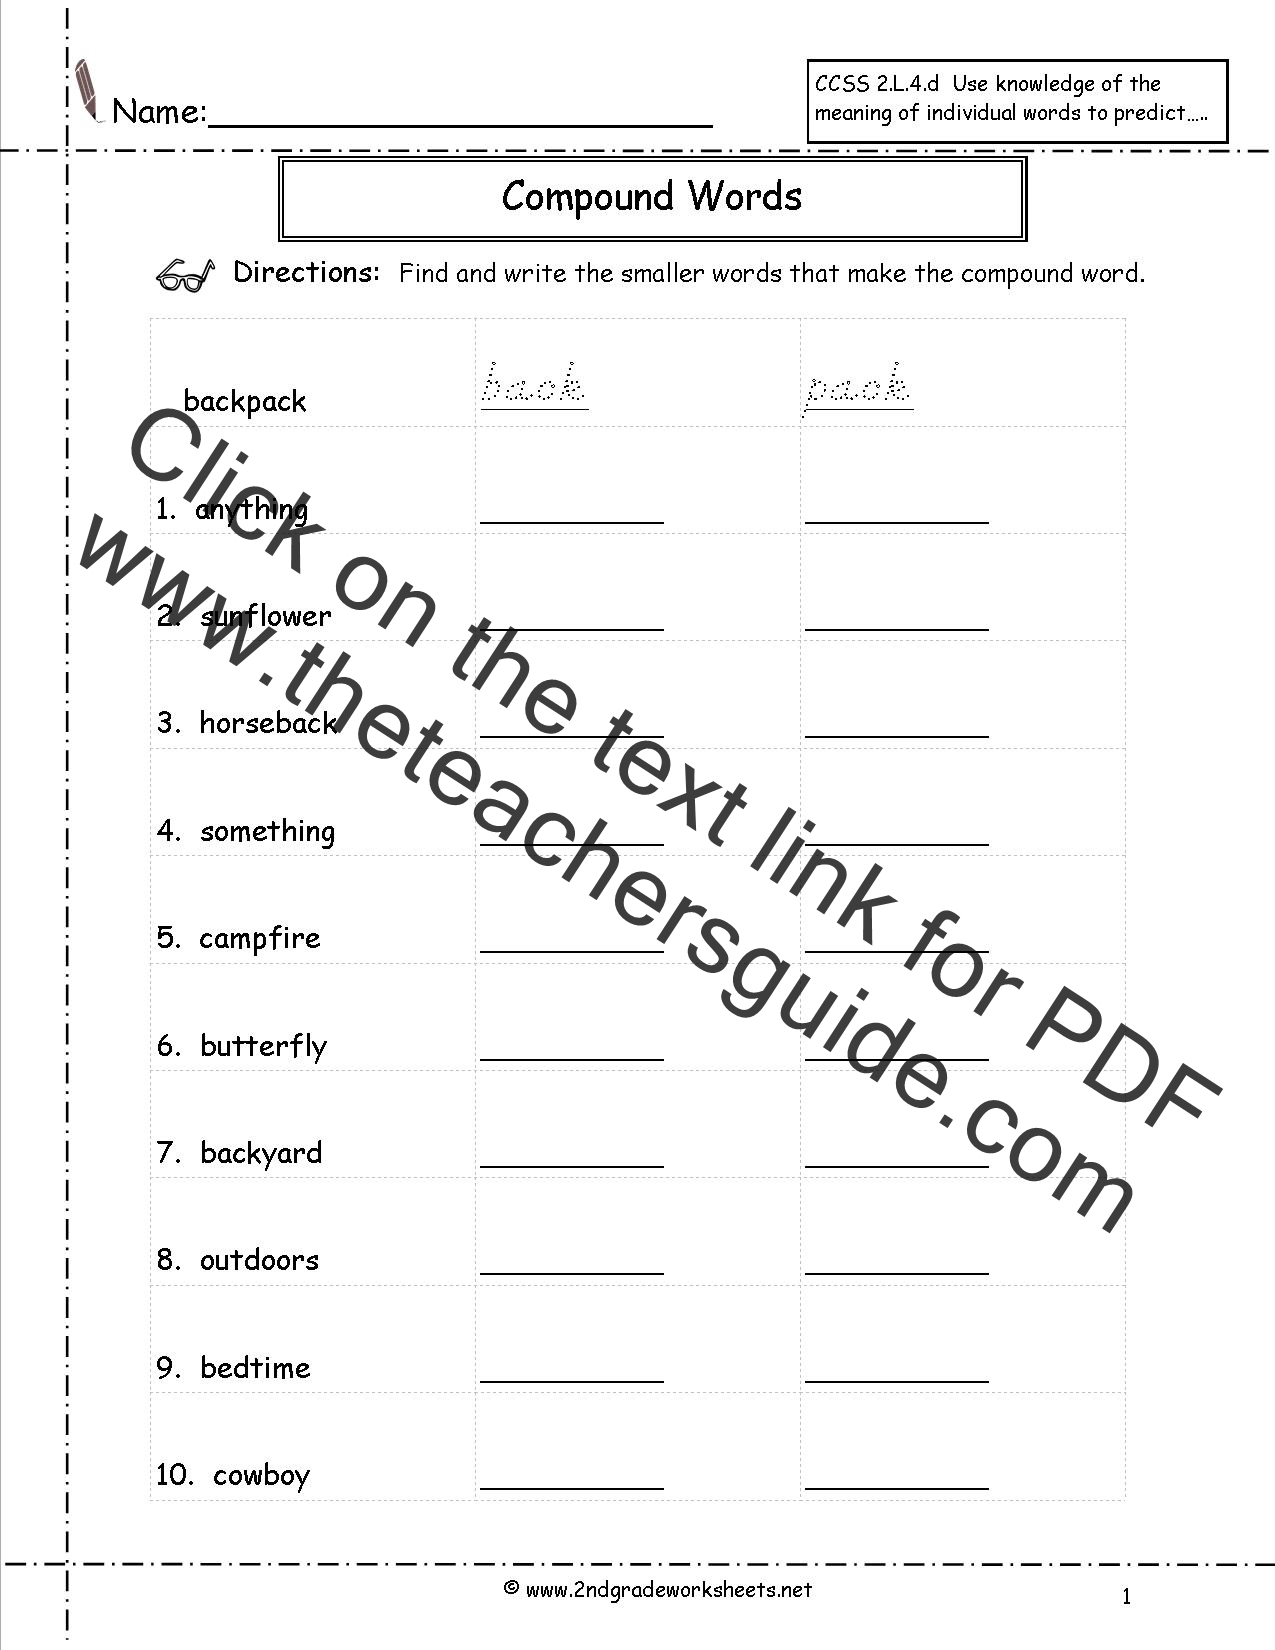 Printables Free Printable Worksheets For Second Grade free languagegrammar worksheets and printouts compound words worksheets